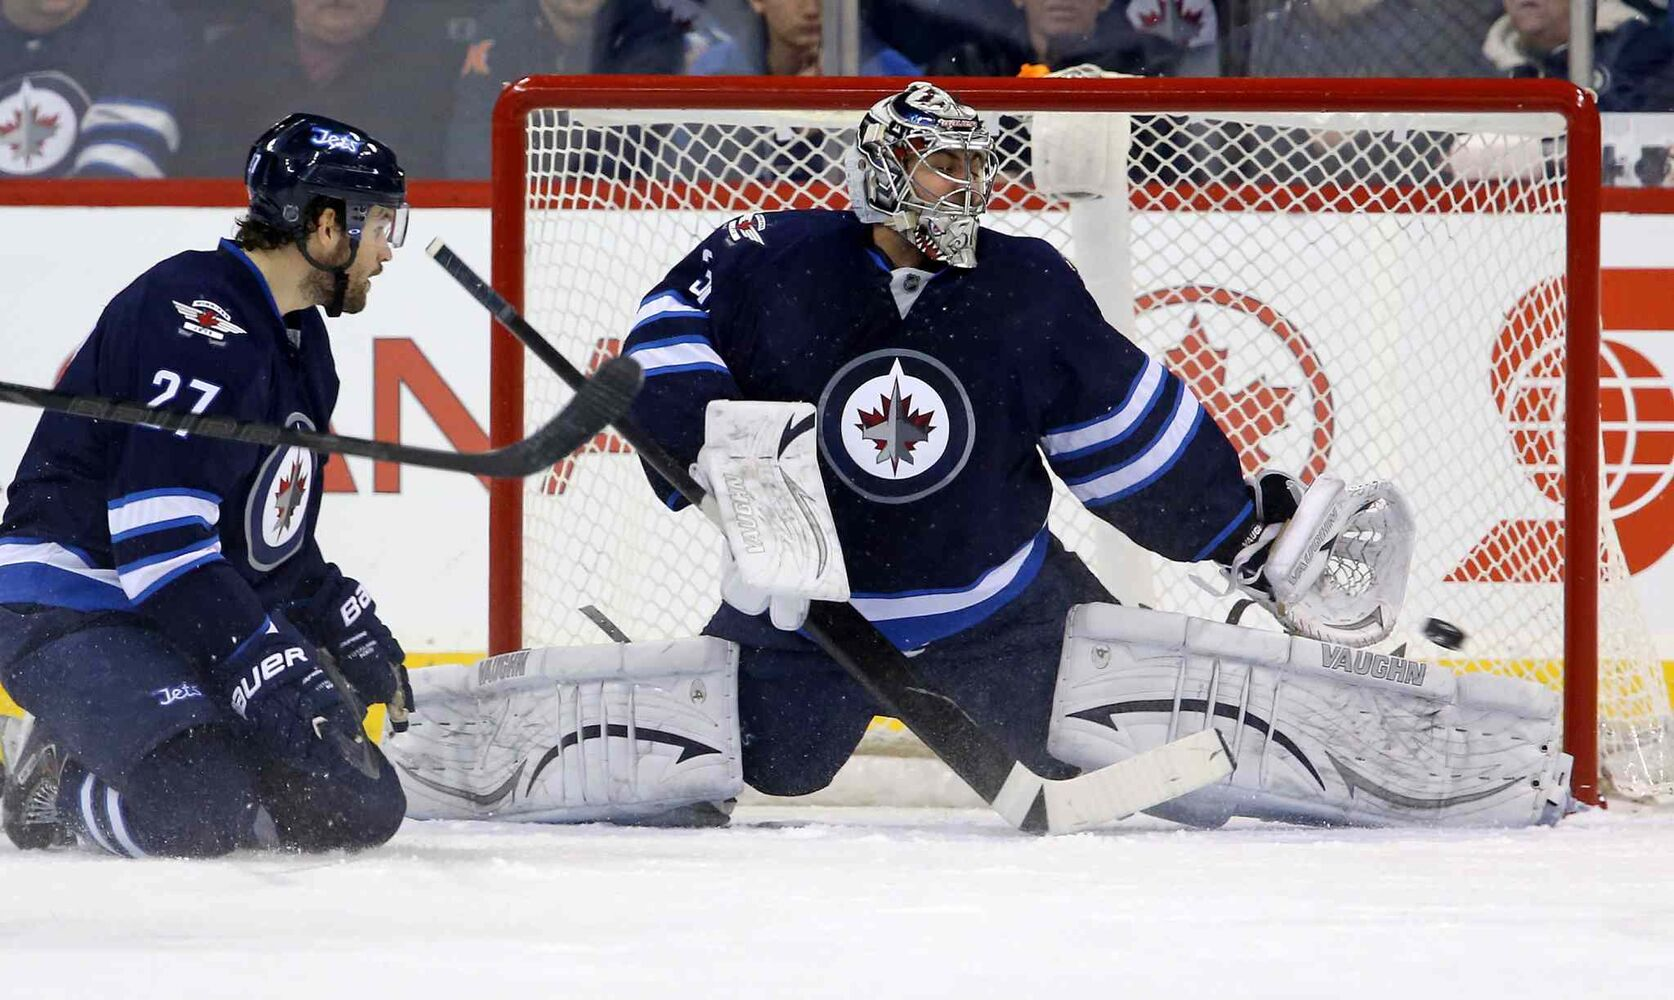 Tampa Bay Lightning's Ondrej Palat (18), not shown, scores on Winnipeg Jets goaltender Ondrej Pavelec (31) with Eric Tangradi (27) in the crease during second period. (Trevor Hagan / The Canadian Press)